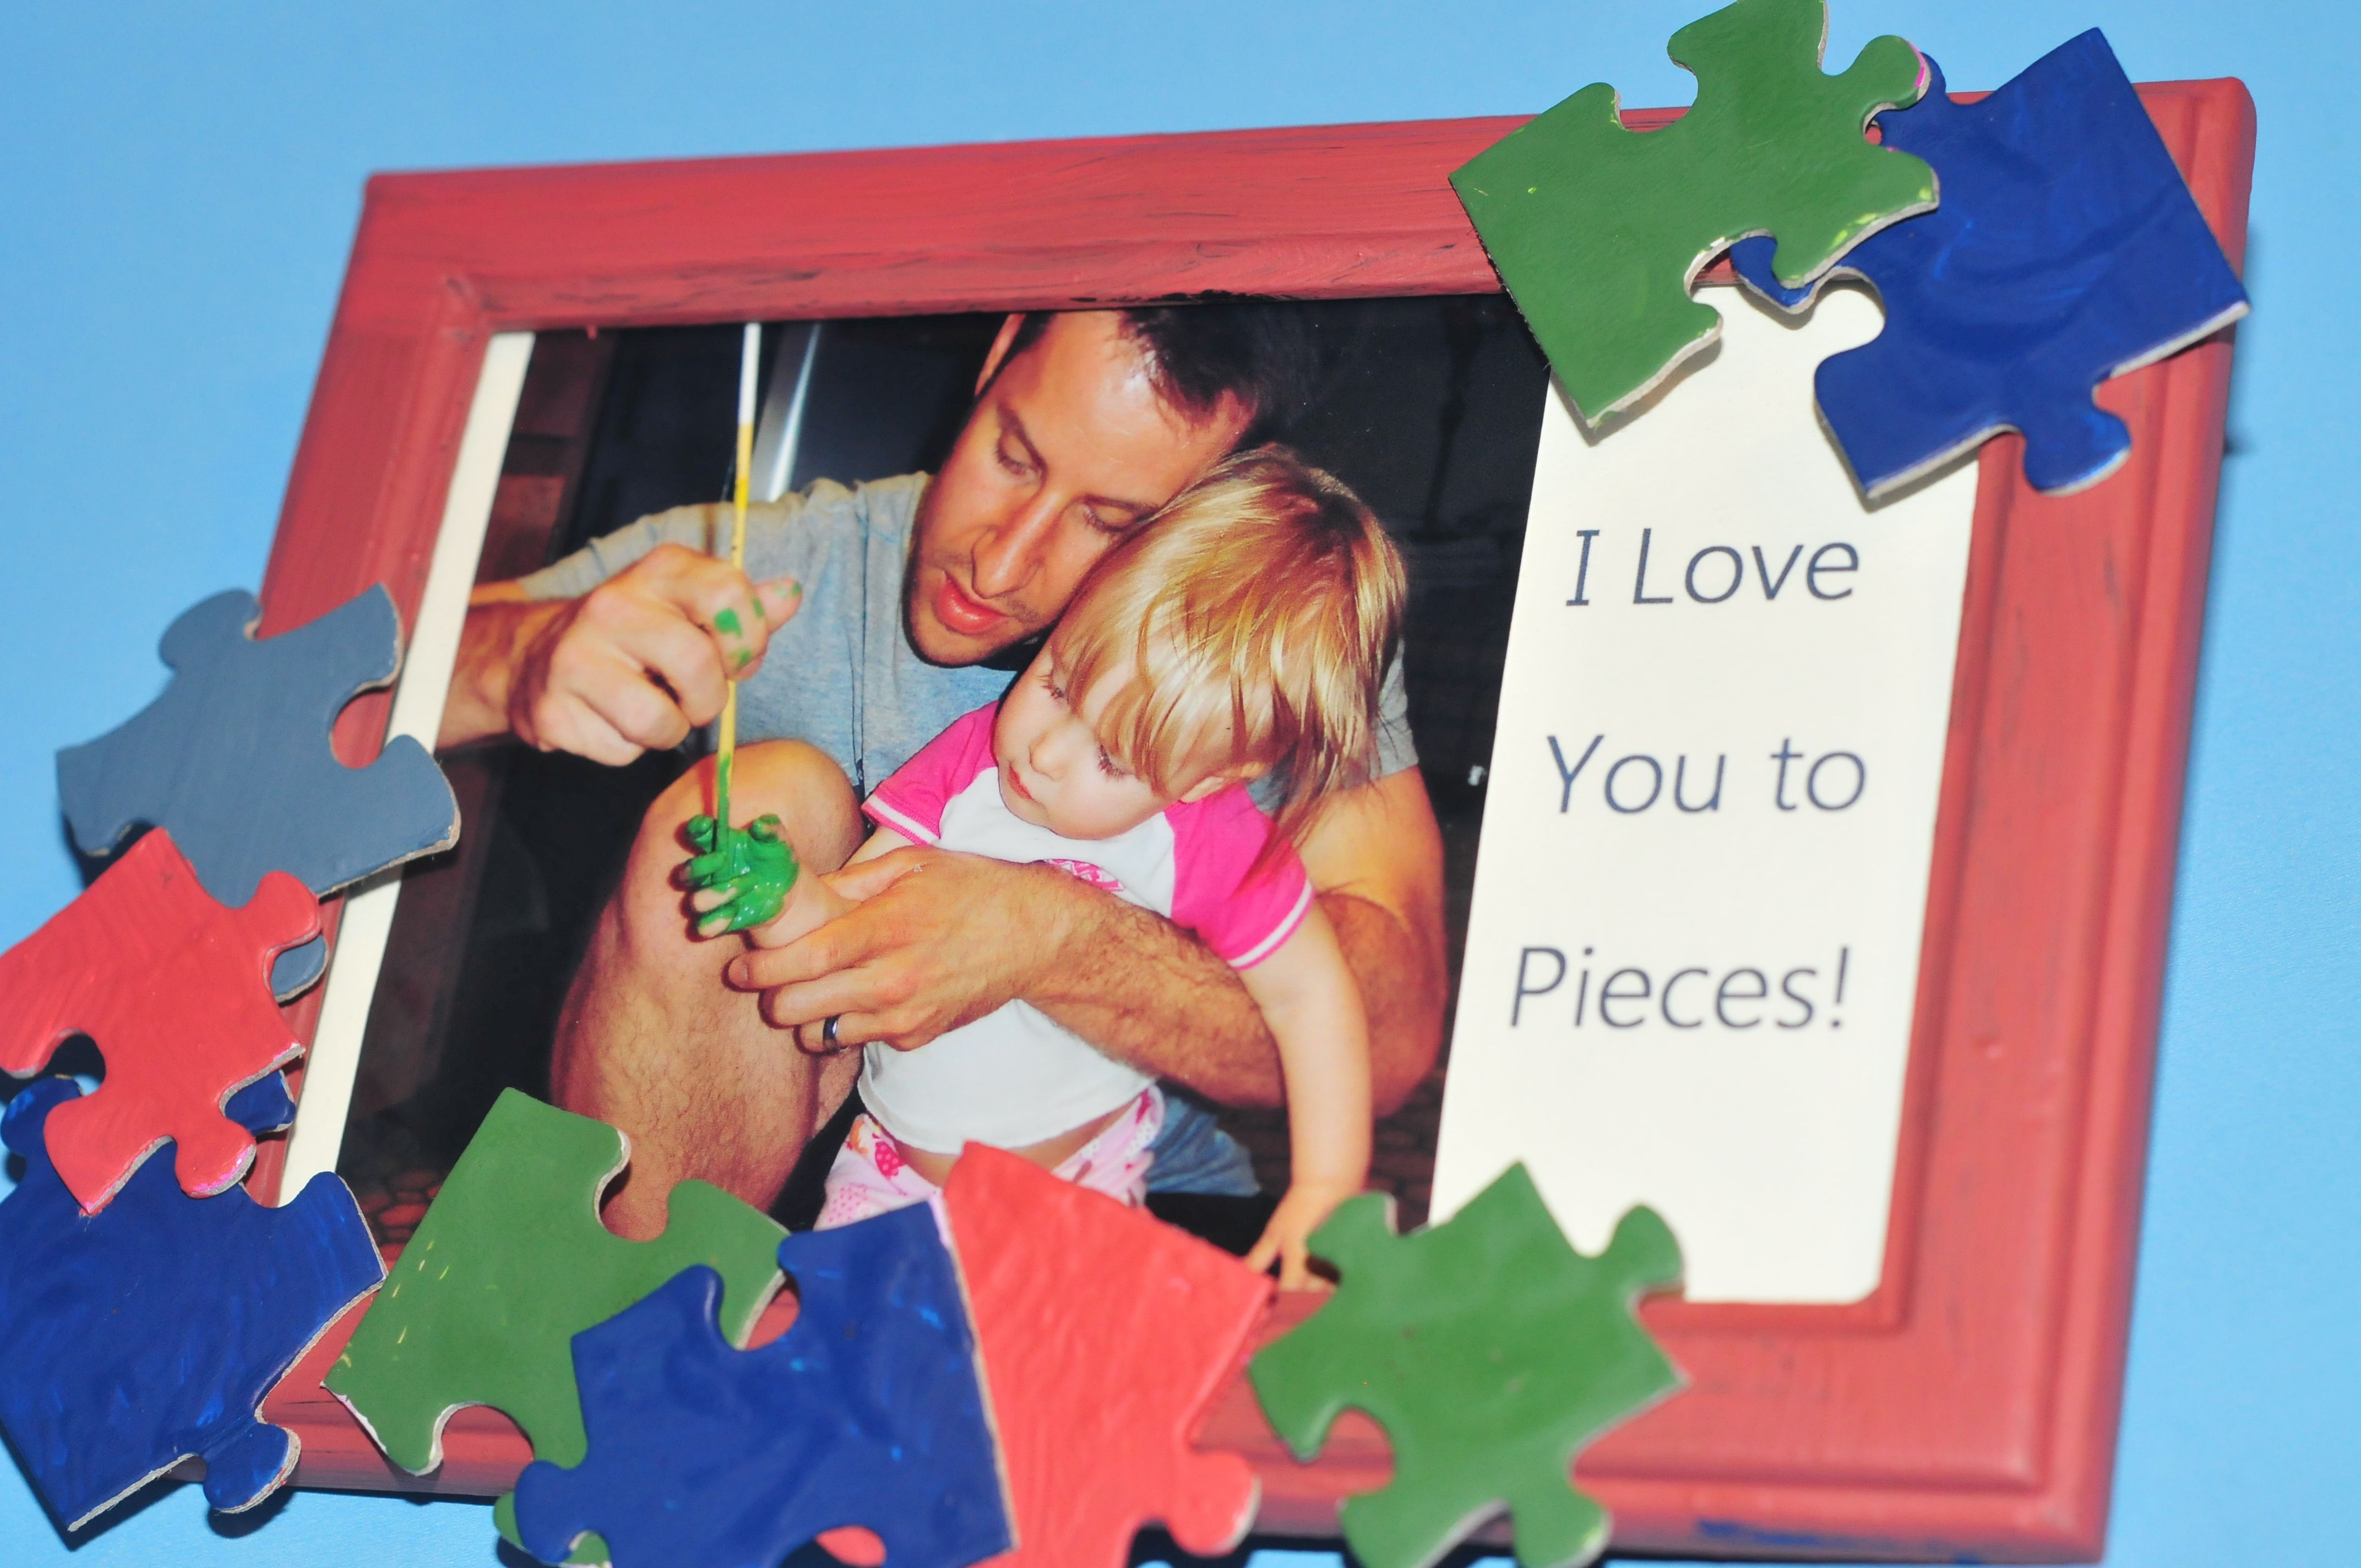 Fathers day picture frame puzzle piece picture frame i love you fathers day picture frame puzzle piece picture frame i love you to pieces jeuxipadfo Images